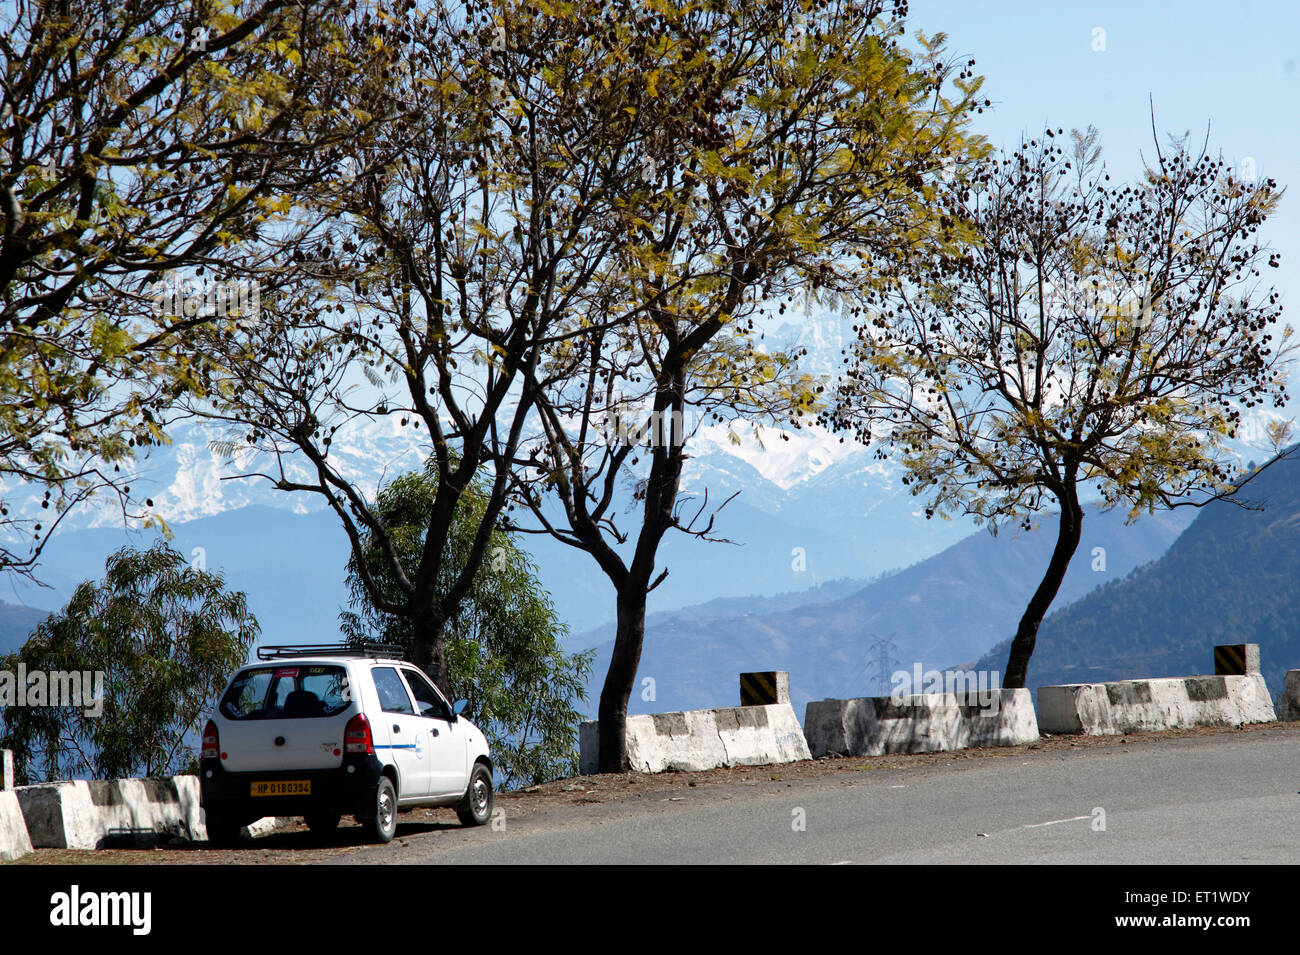 car on street shimla himachal pradesh india Asia - Stock Image